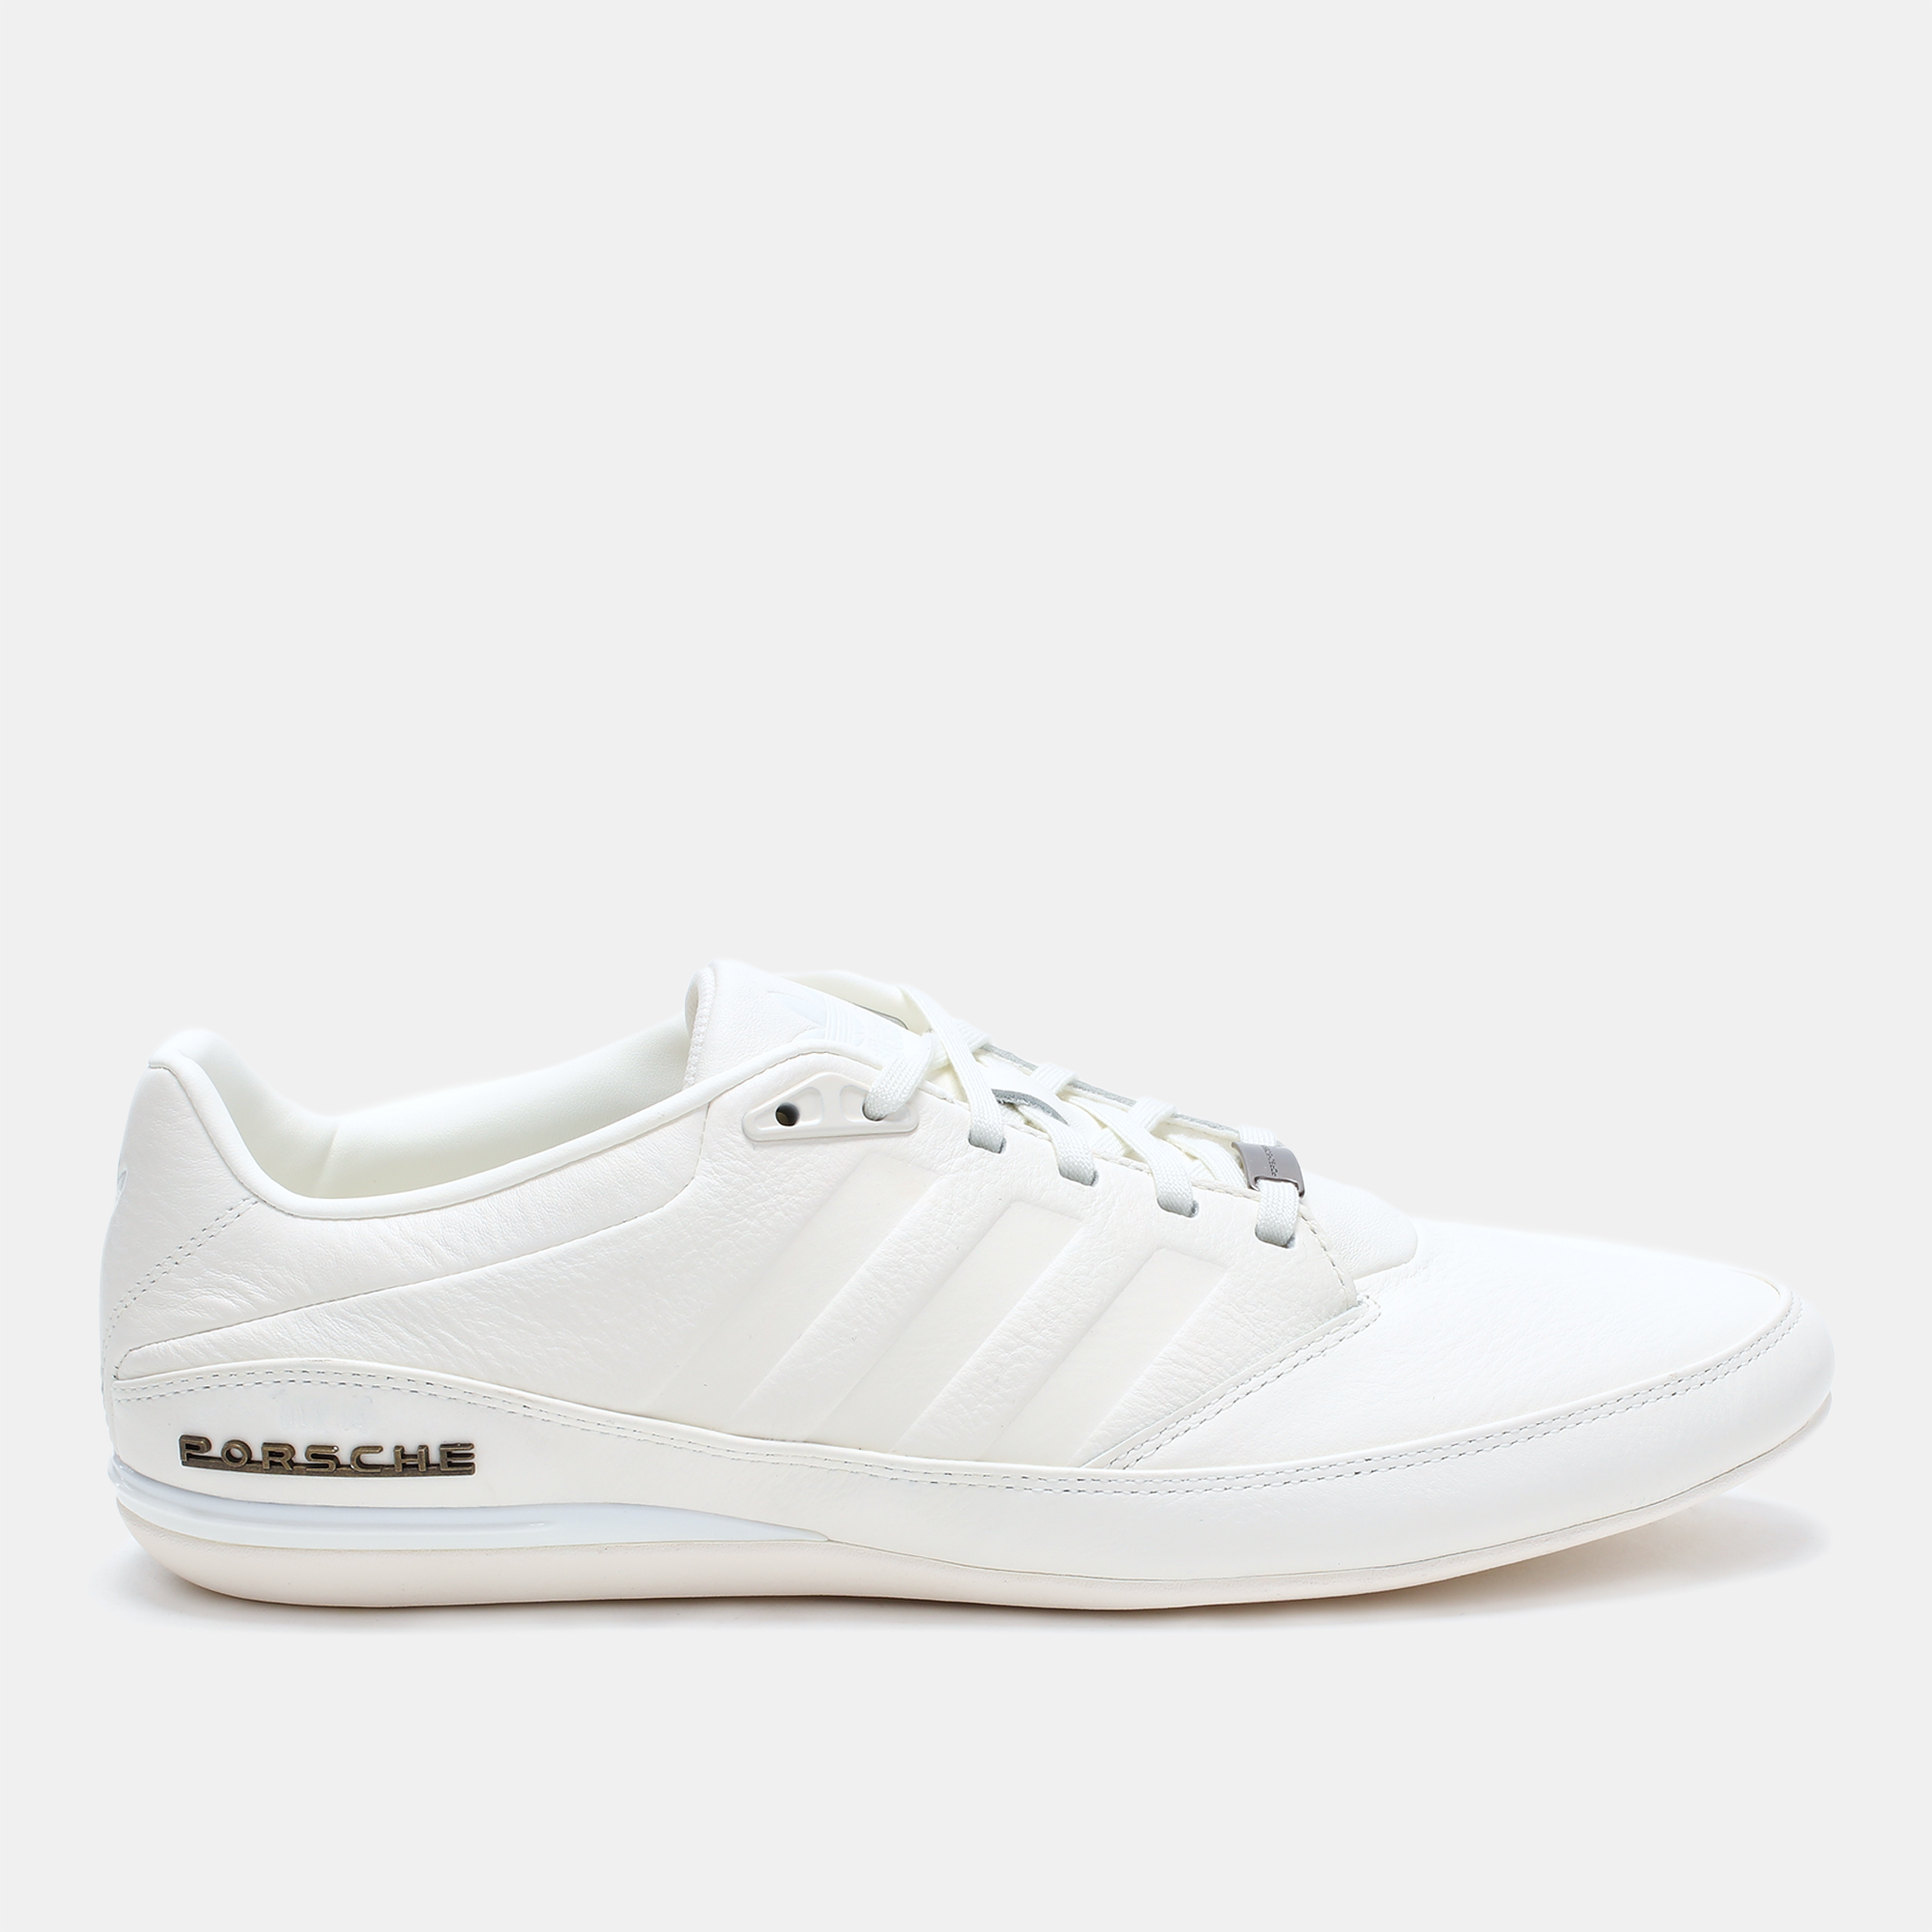 low cost 3edb1 087a5 Shop White adidas Porsche Typ 64 2.0 Shoe for Mens by adidas ...